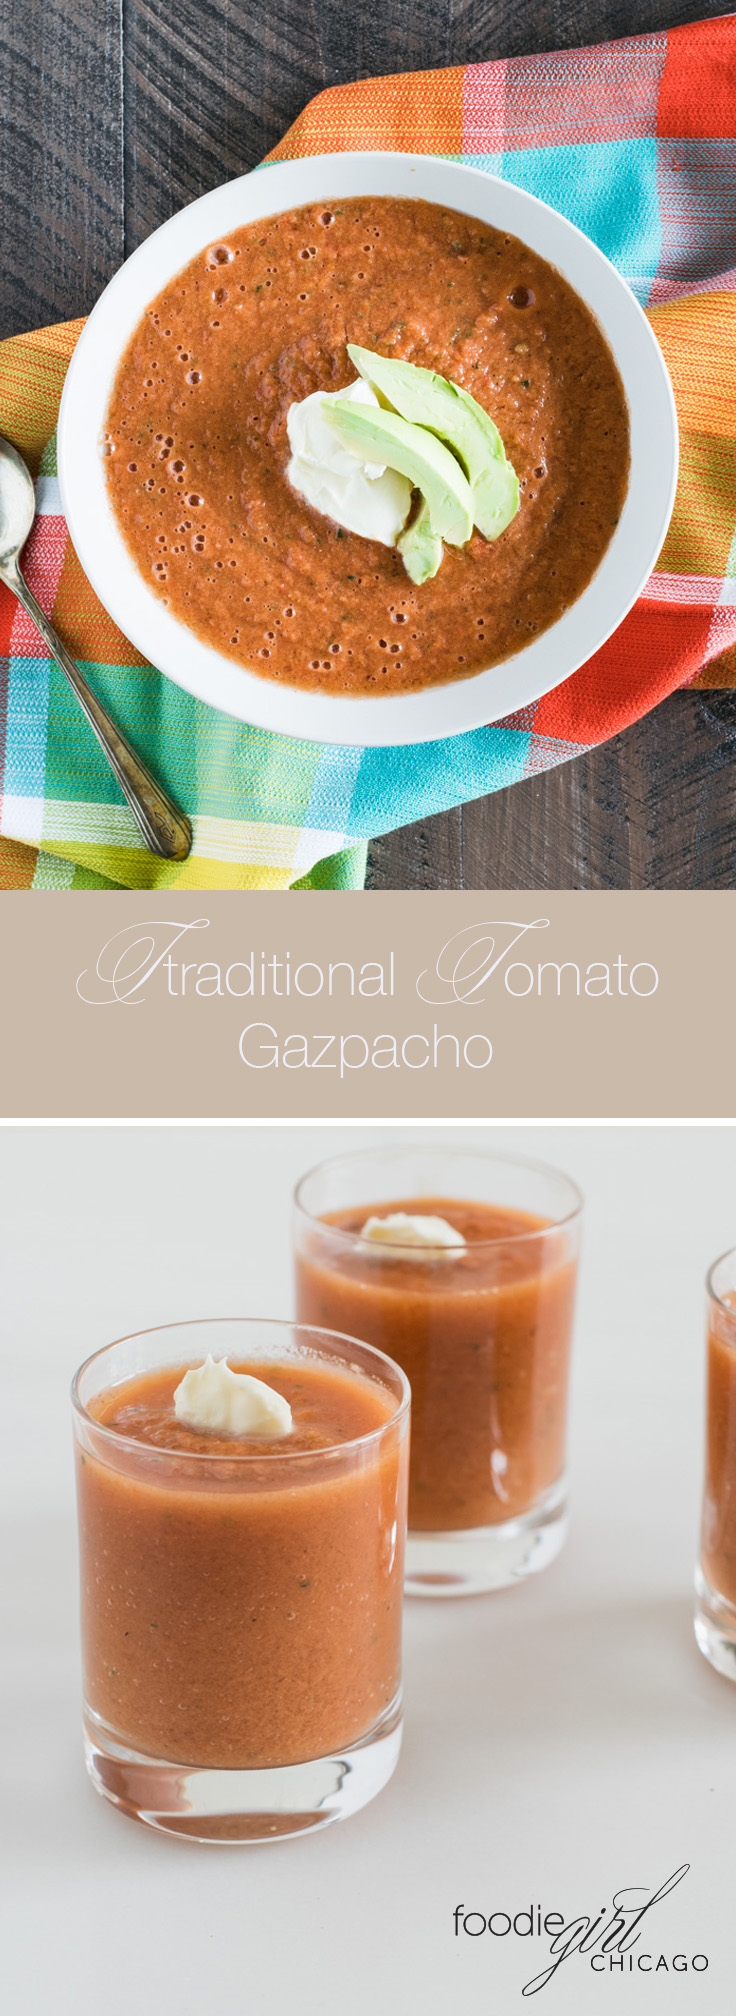 Traditional Tomato Gazpacho is a chilled soup that perfect for summer.